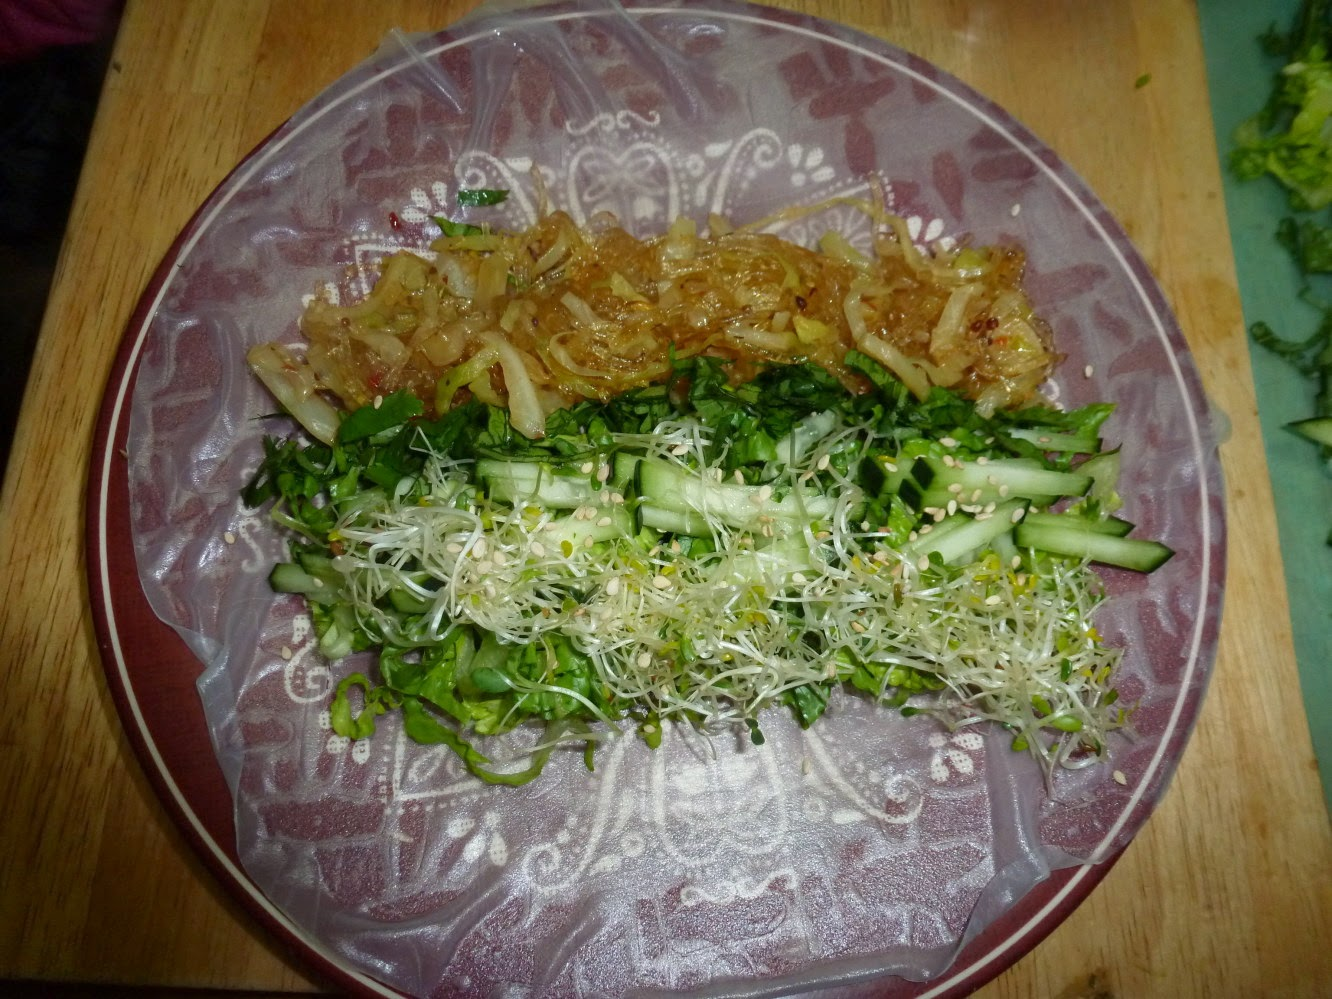 ... alfalfa sprouts, cilantro, sesame seeds and cooked vermicelli noodles